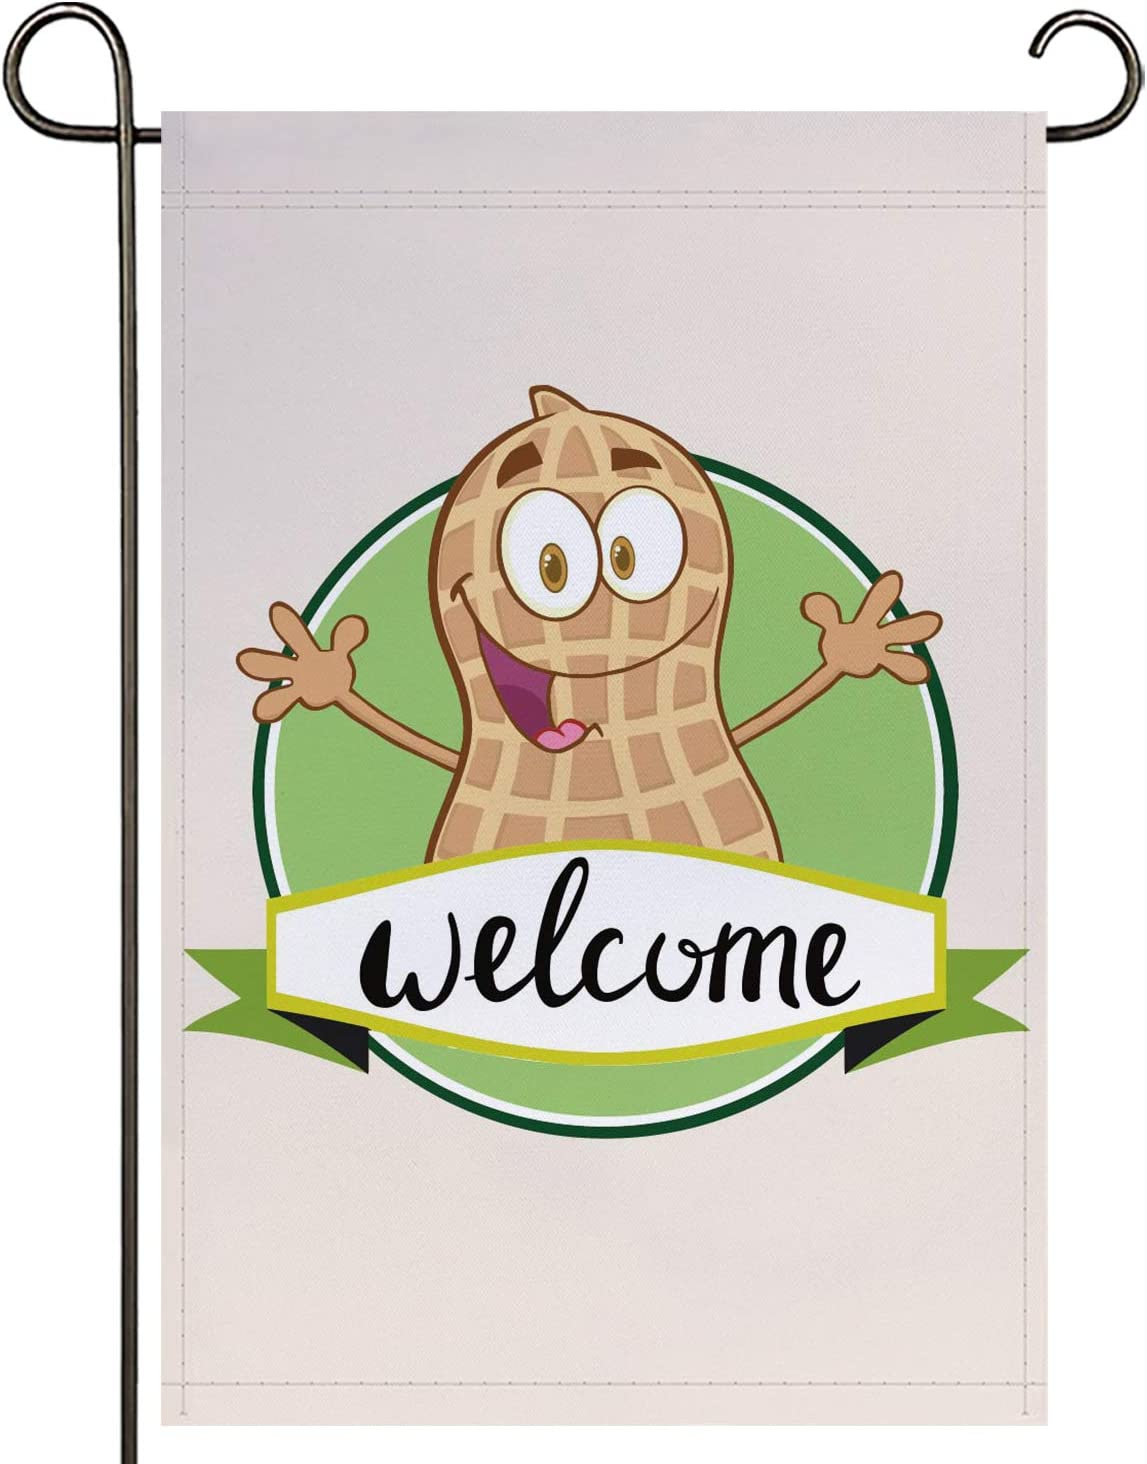 onetoze Peanut Garden Flag Vertical Double Sided, 12.5X 18inch Welcome Garden Flag, Premium Polyester Weather and UV Resistant for Yard Outdoor Decoration